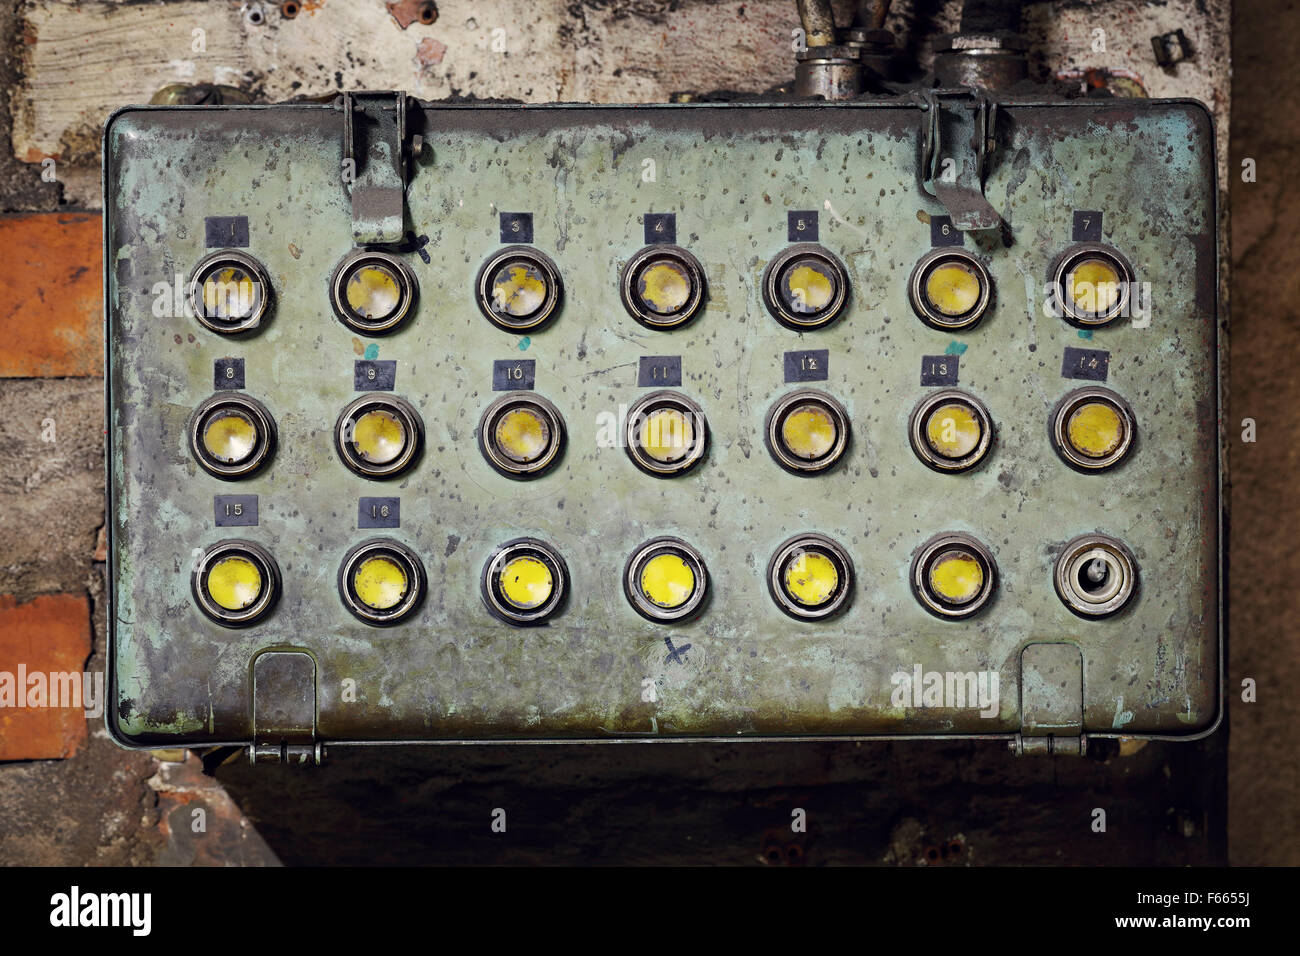 old electrical box stock photos old electrical box stock images old dirty electrical box push buttons in an old abandoned factory stock